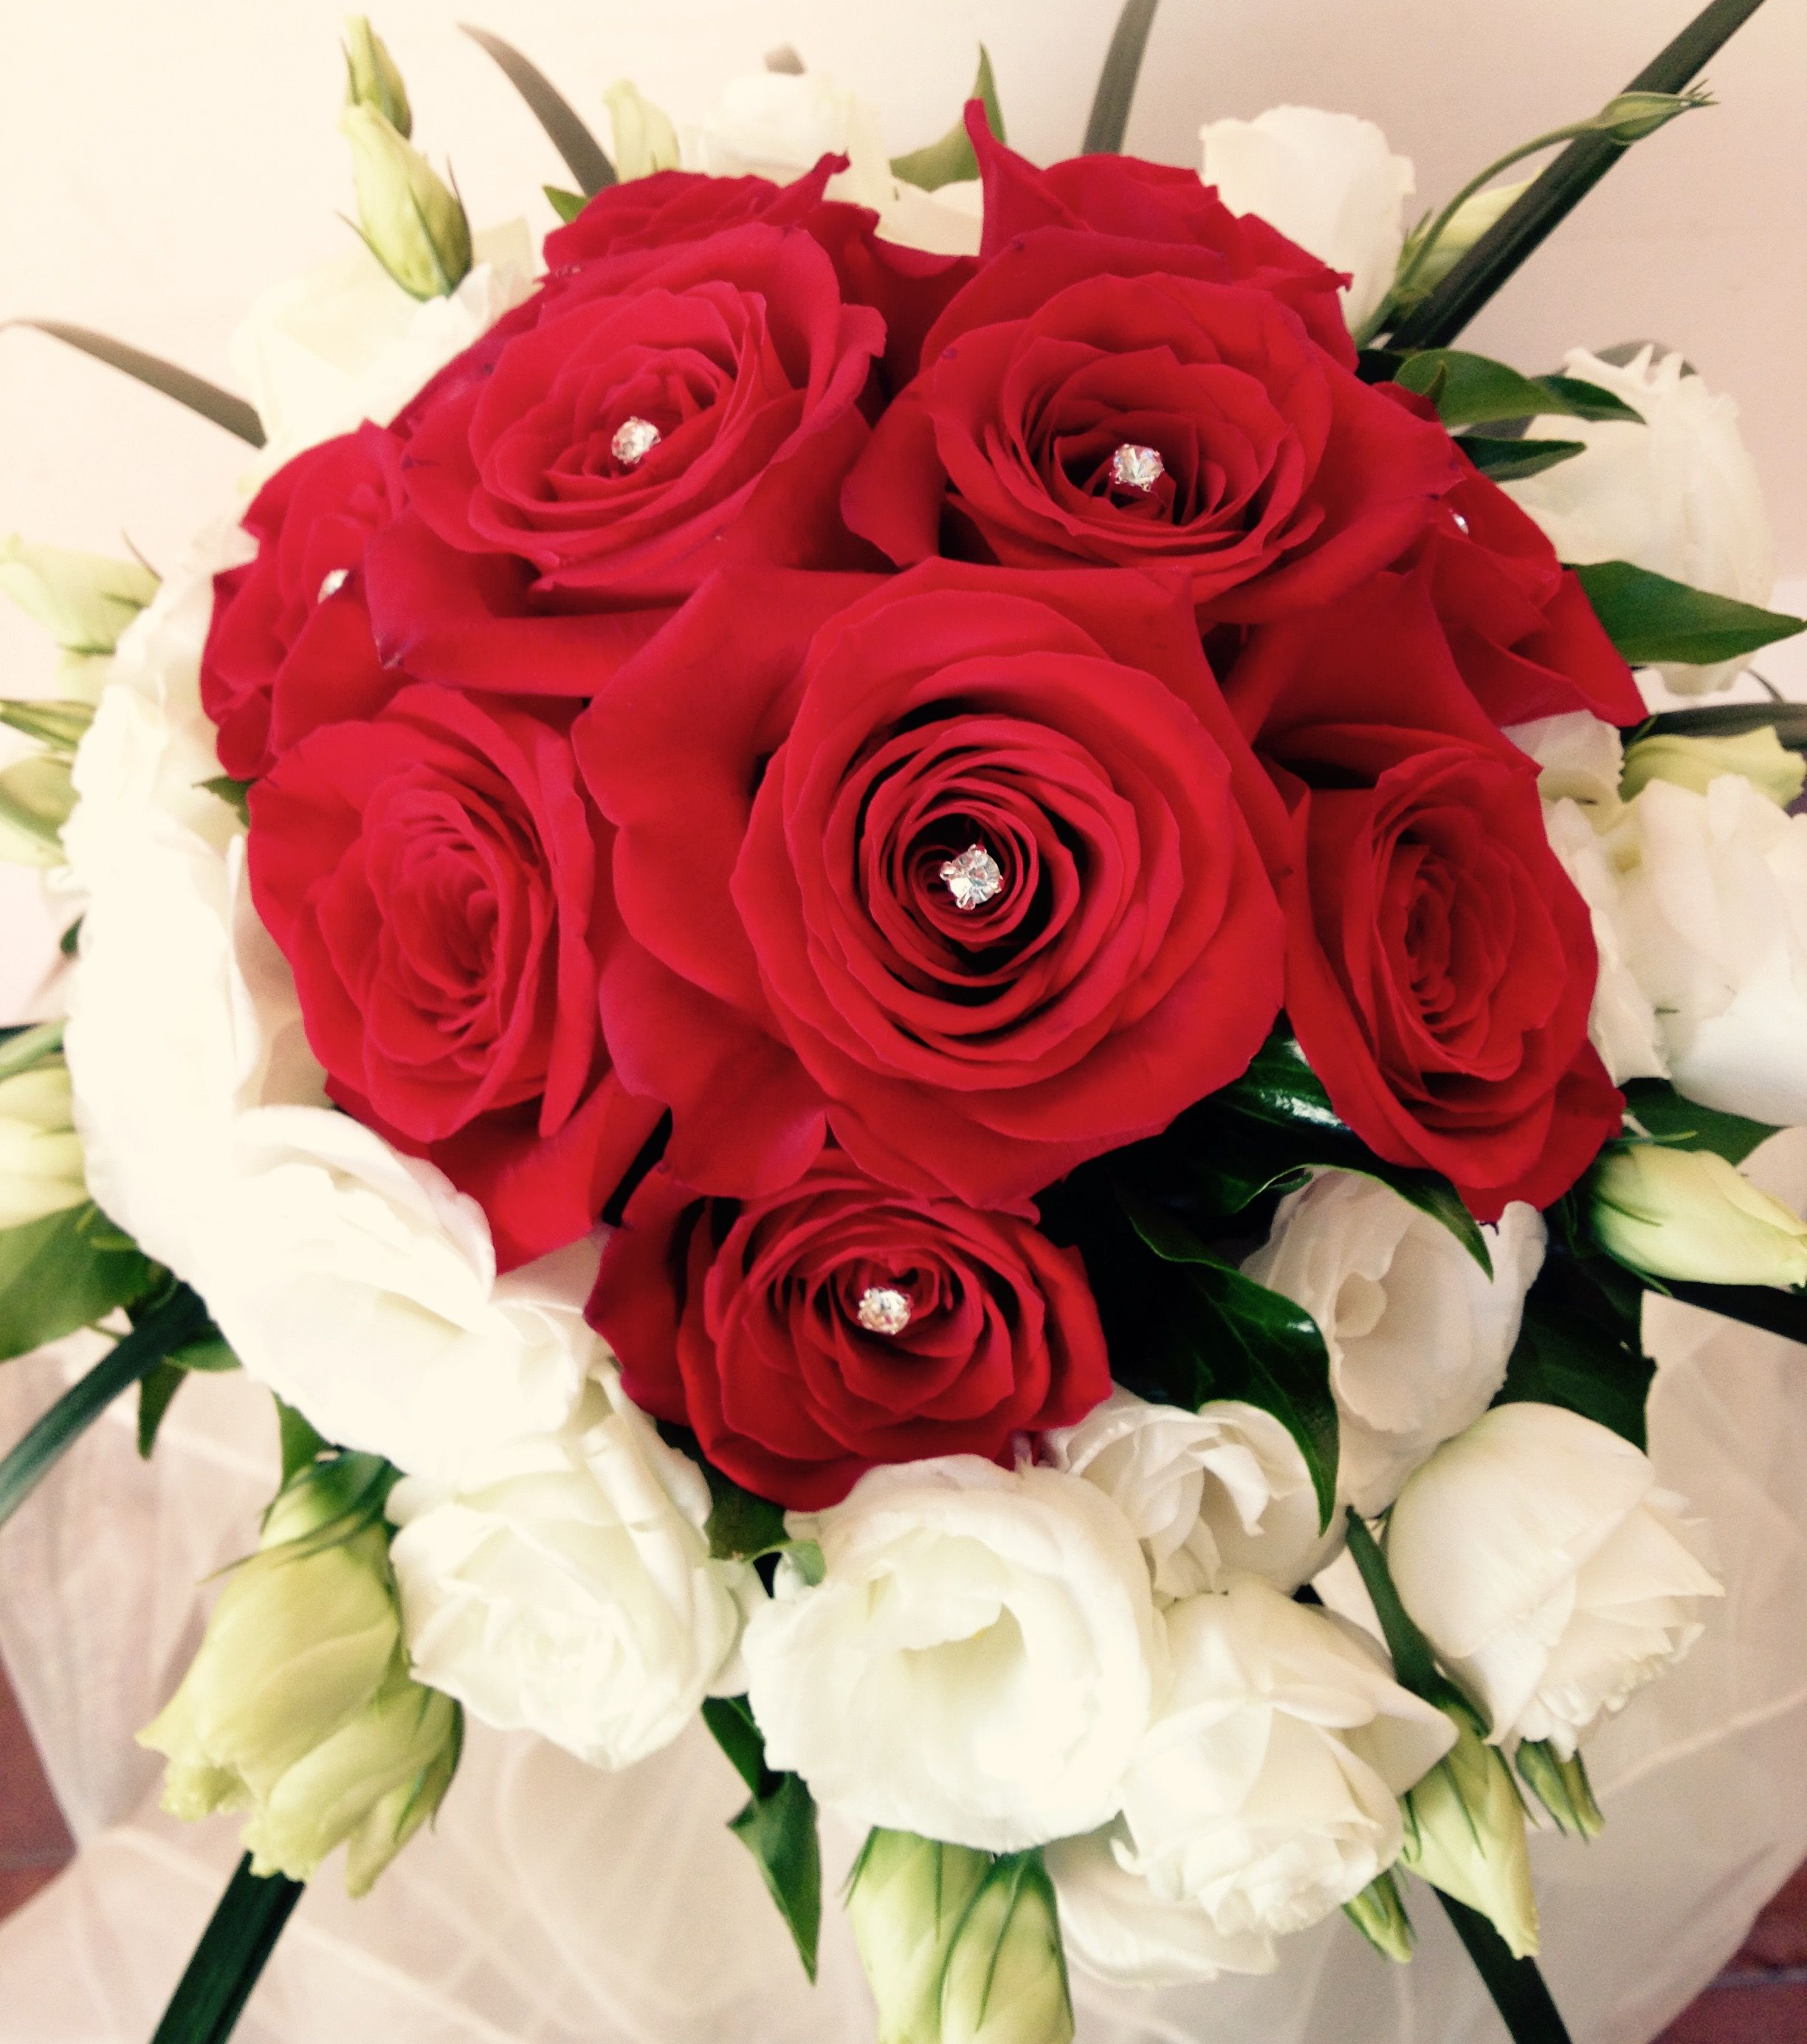 Bouquet Sposa Con Rose Rosse.Bouquet Rose Rosse E Lisianthus Bianco Con Swarovski Wedding